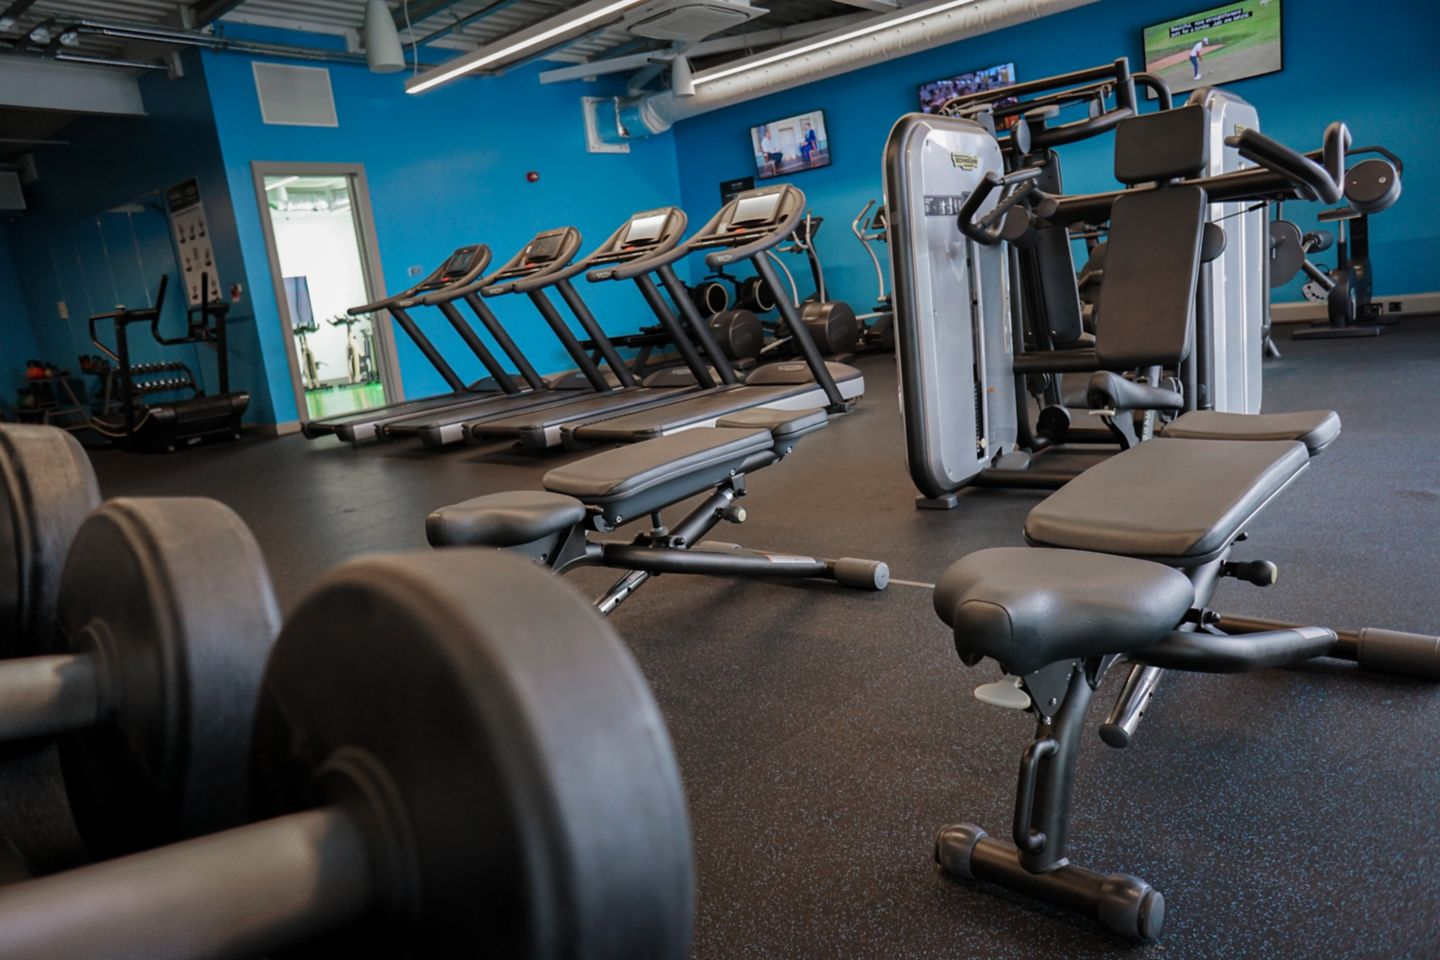 The Kohler Waters Fitness Centre